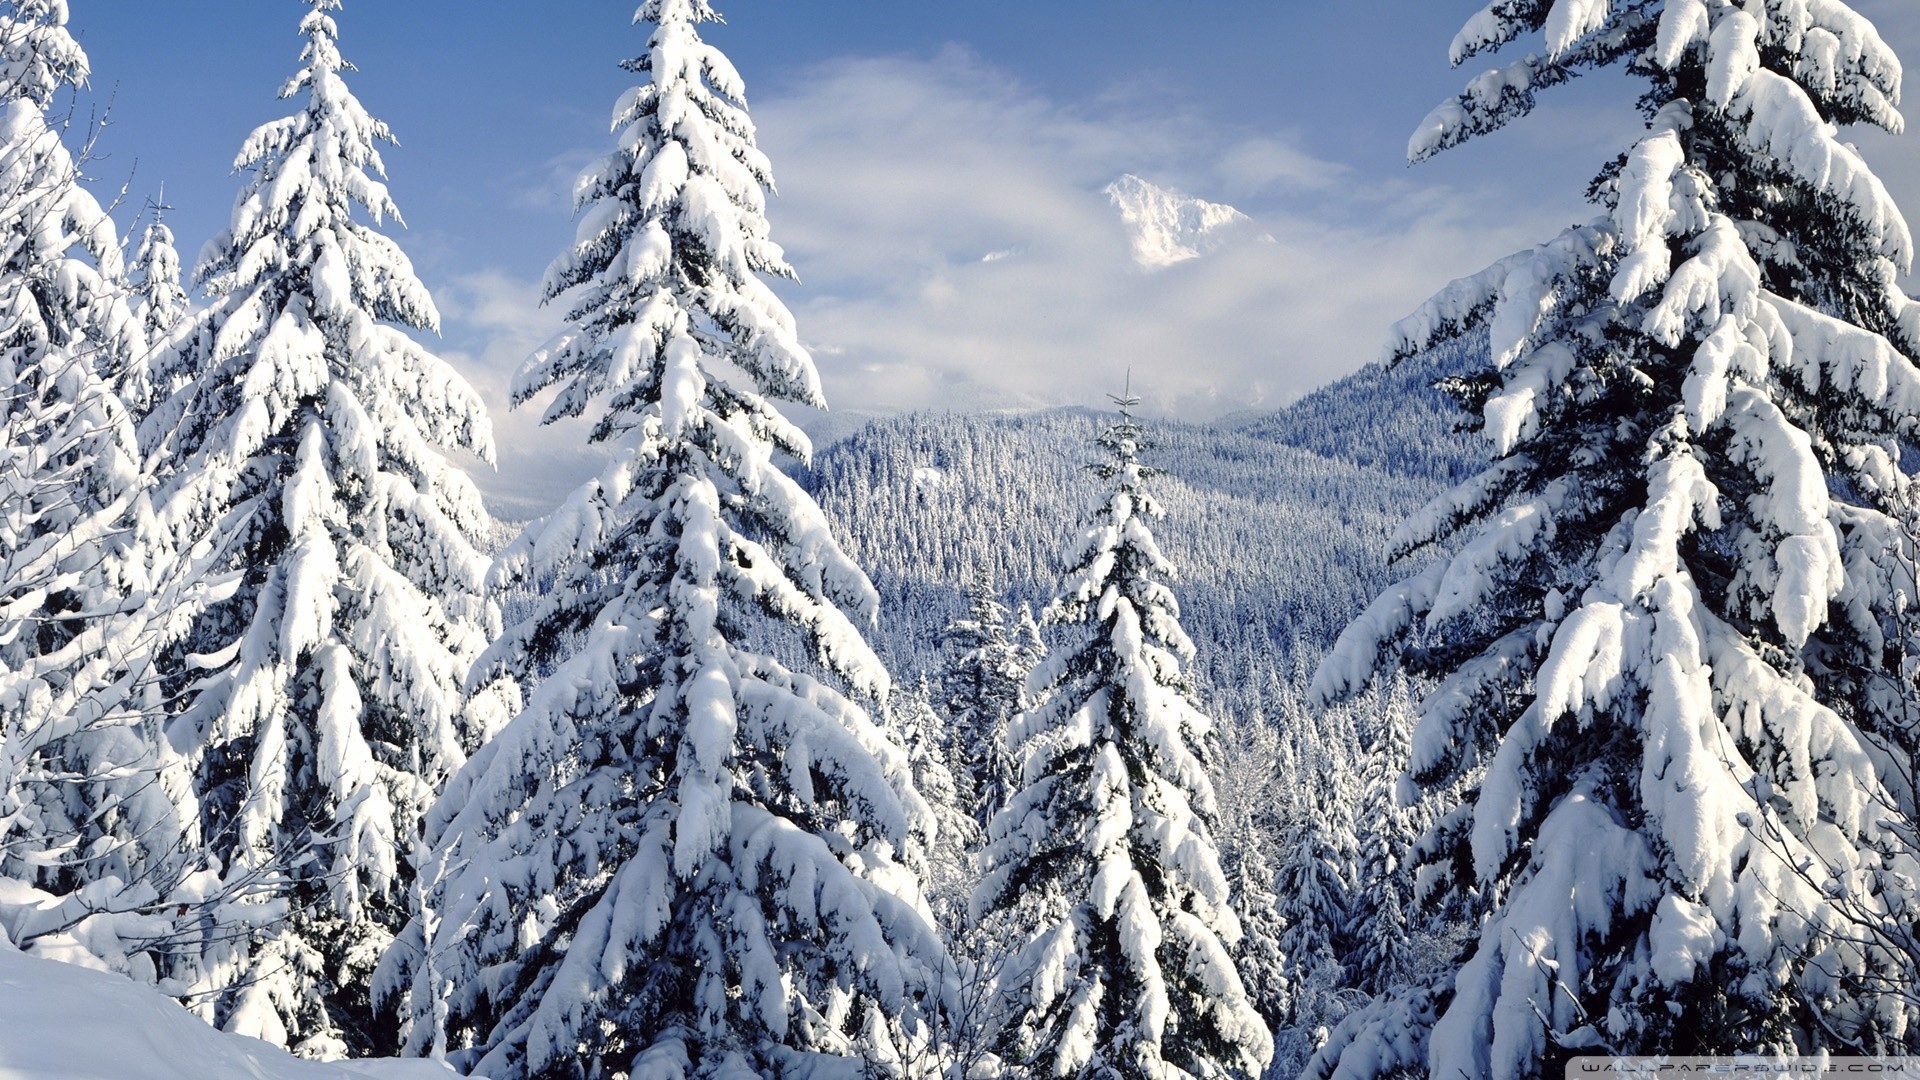 Res: 1920x1080, Snowy Trees Wallpaper